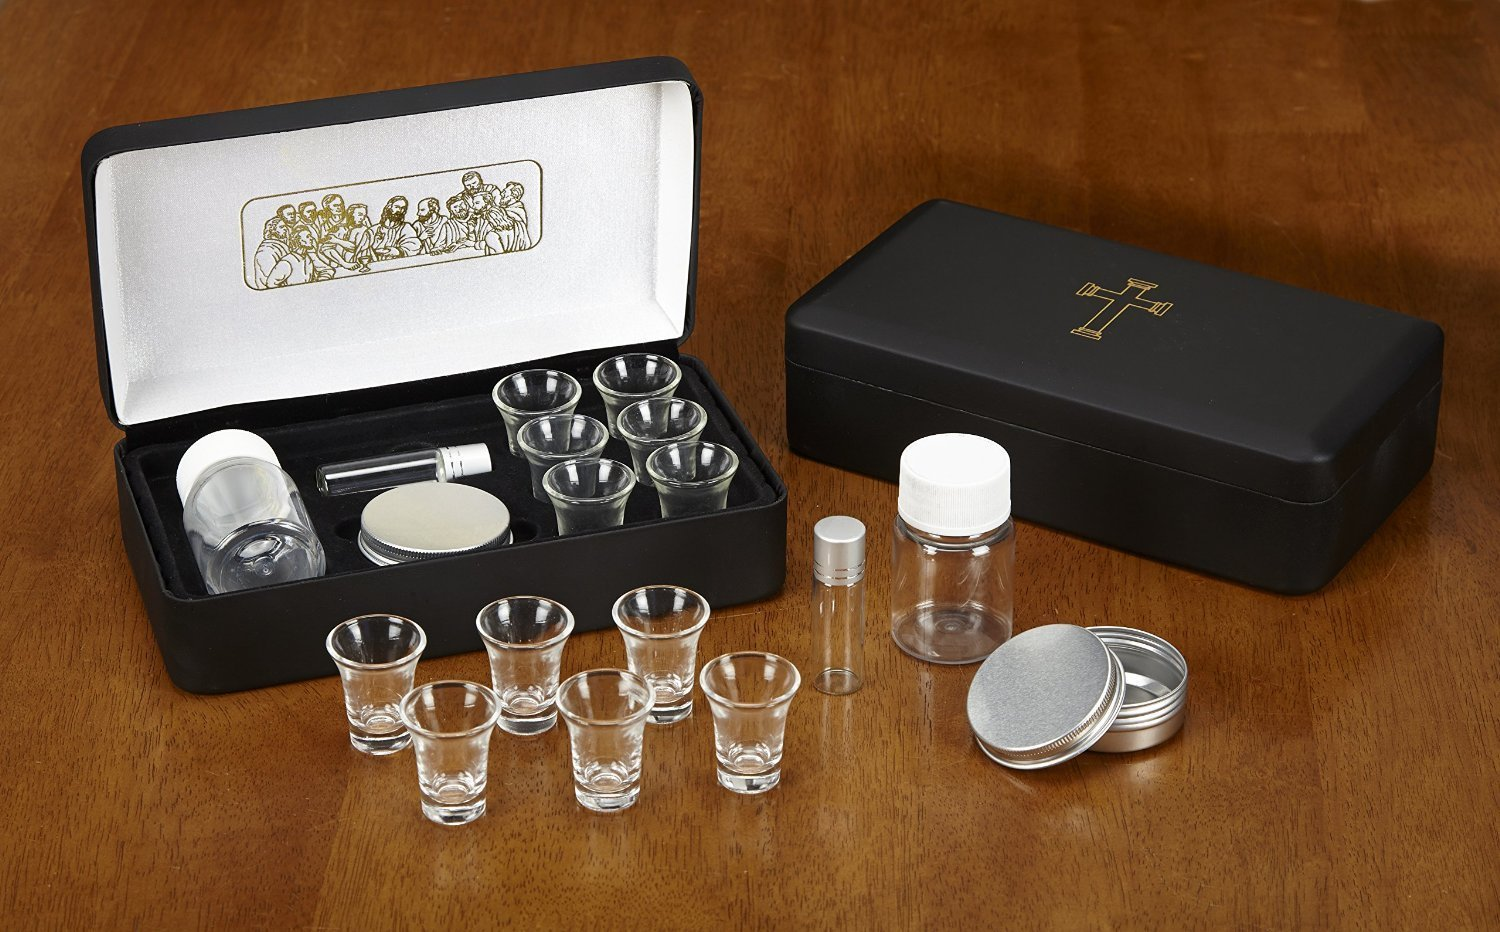 The Last Supper Six (6) Cup Travel Portable Communion Set in Leather Like Case